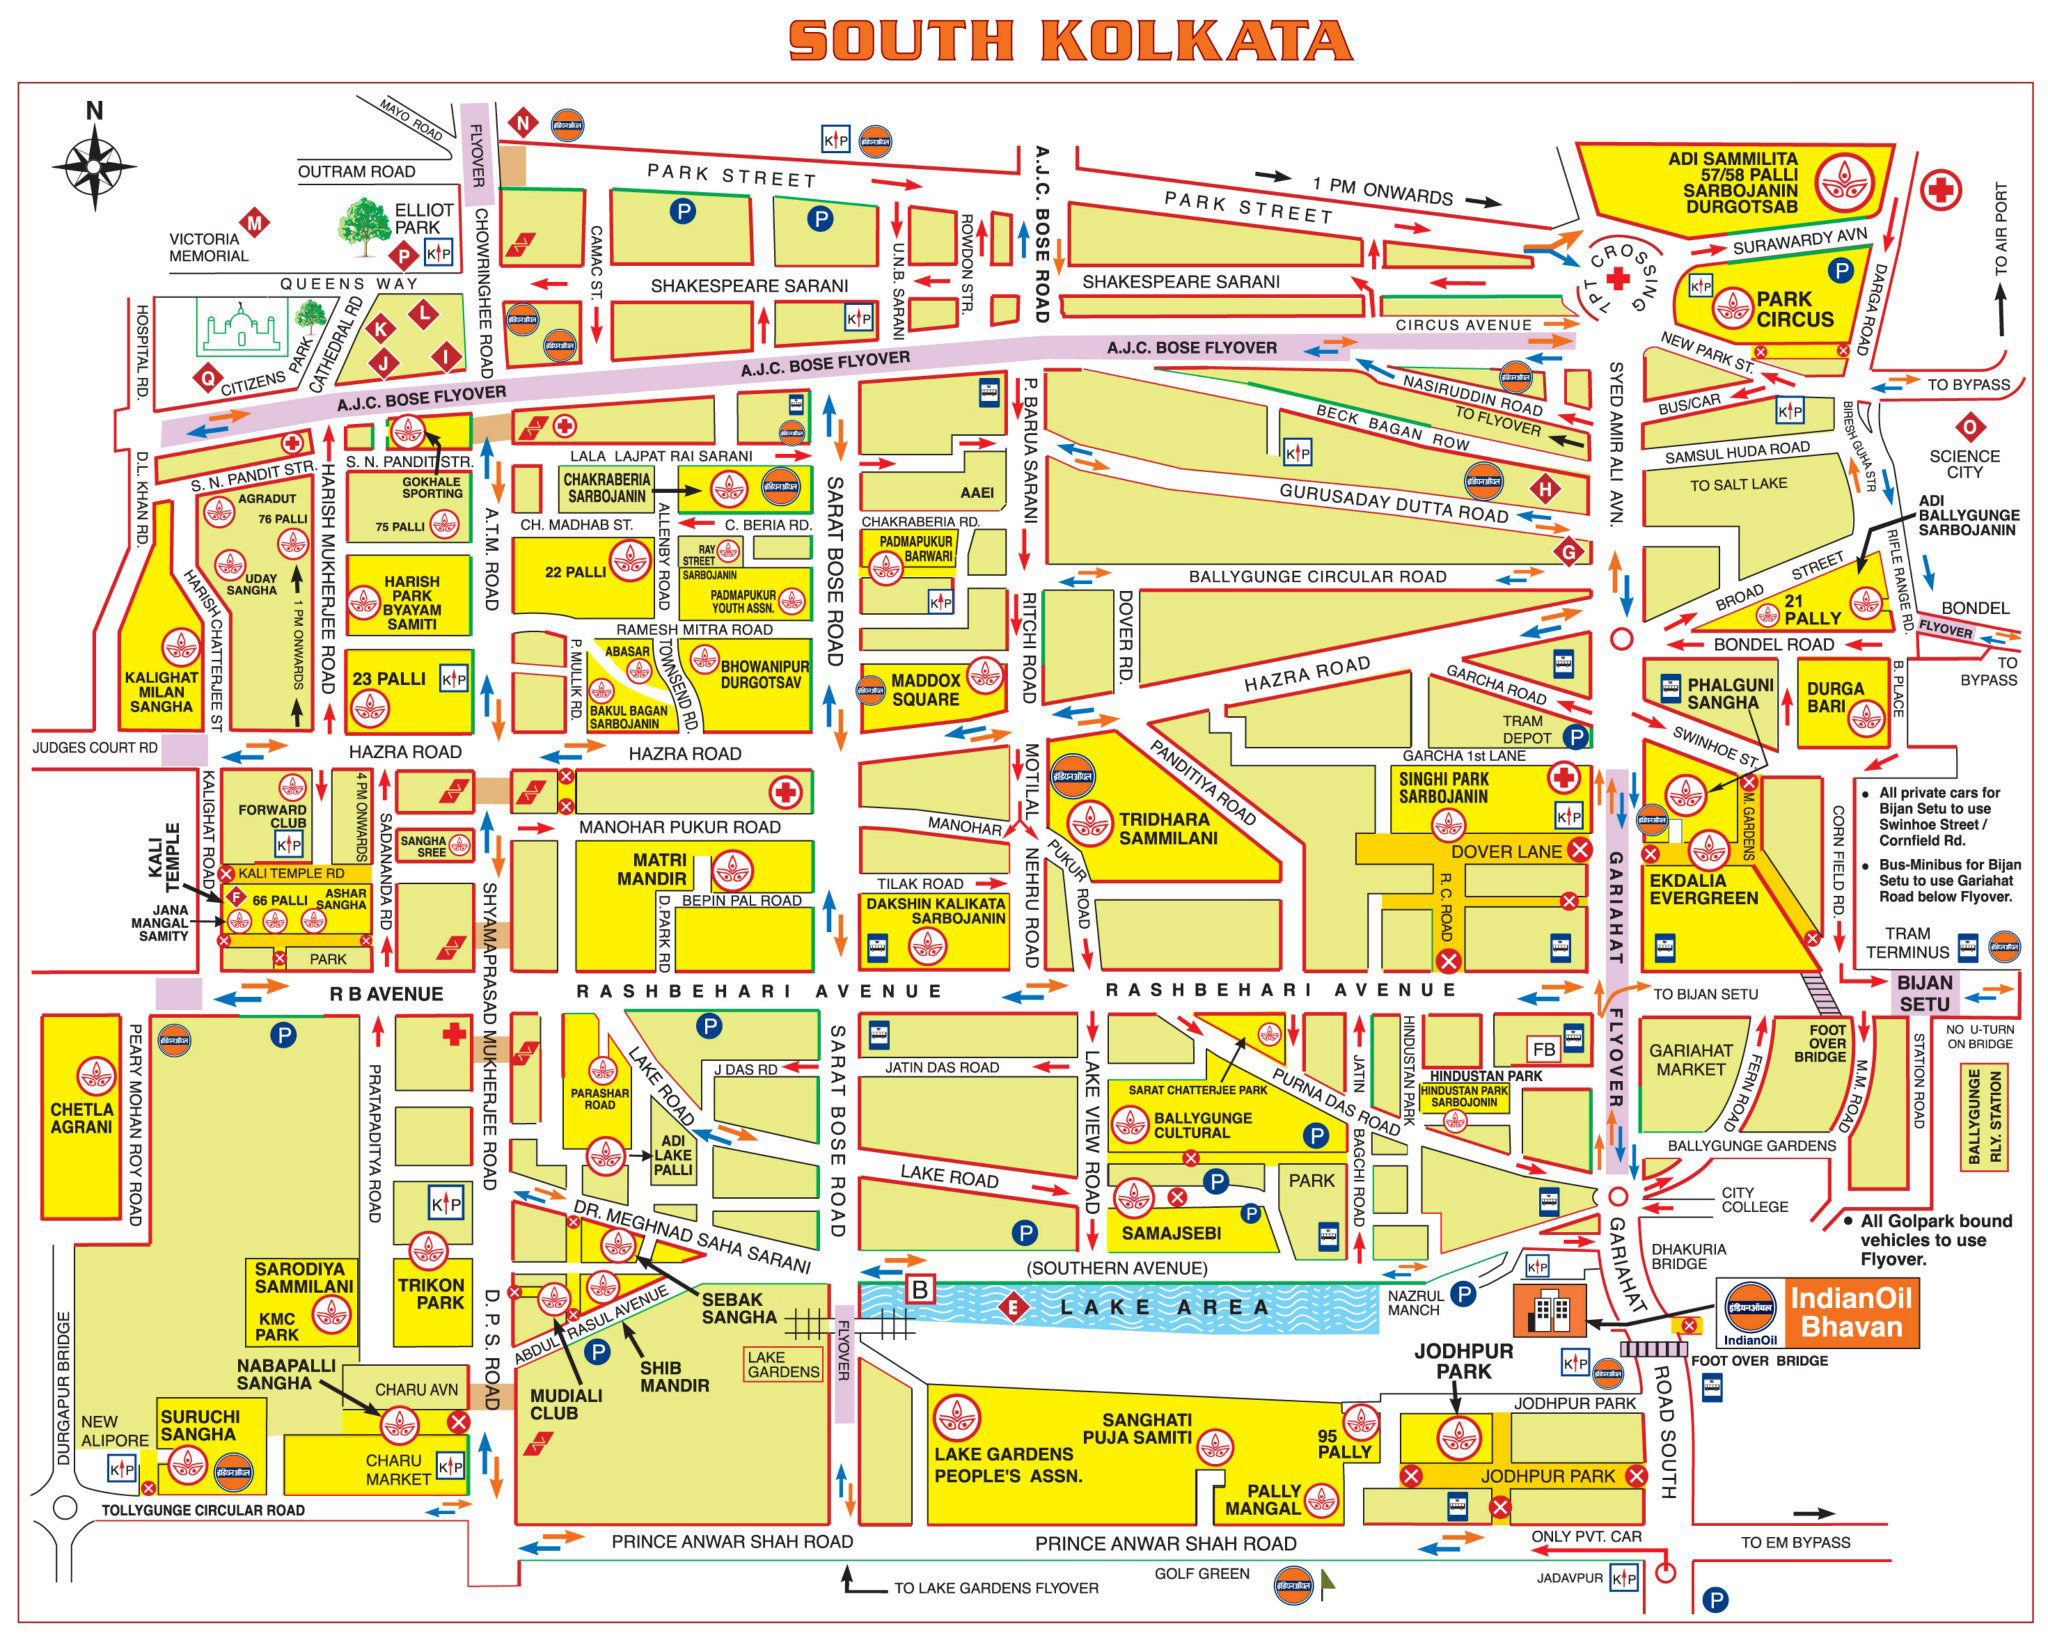 South Kolkata